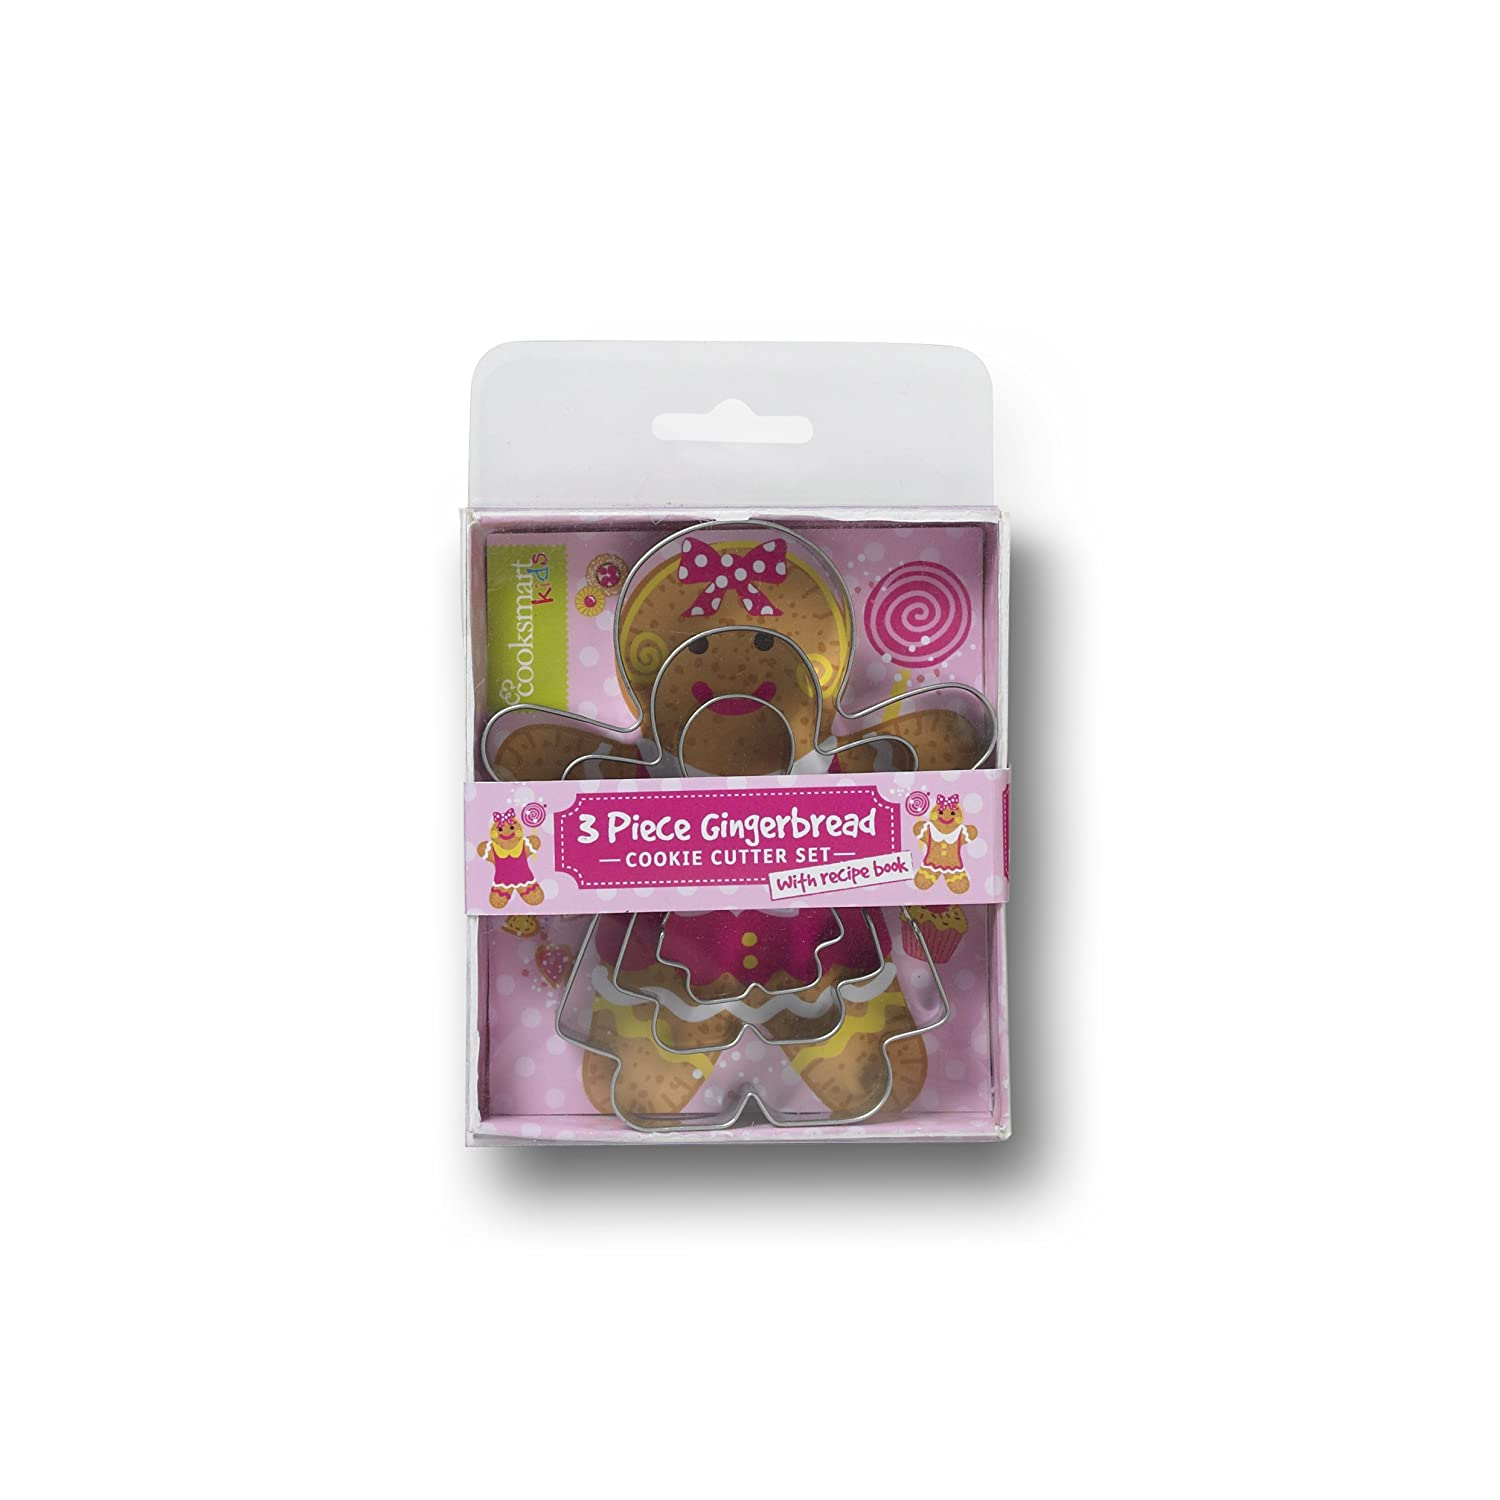 Cooksmart Kids 3-Piece Cookie Cutter Set Gingerbread Girl 8762